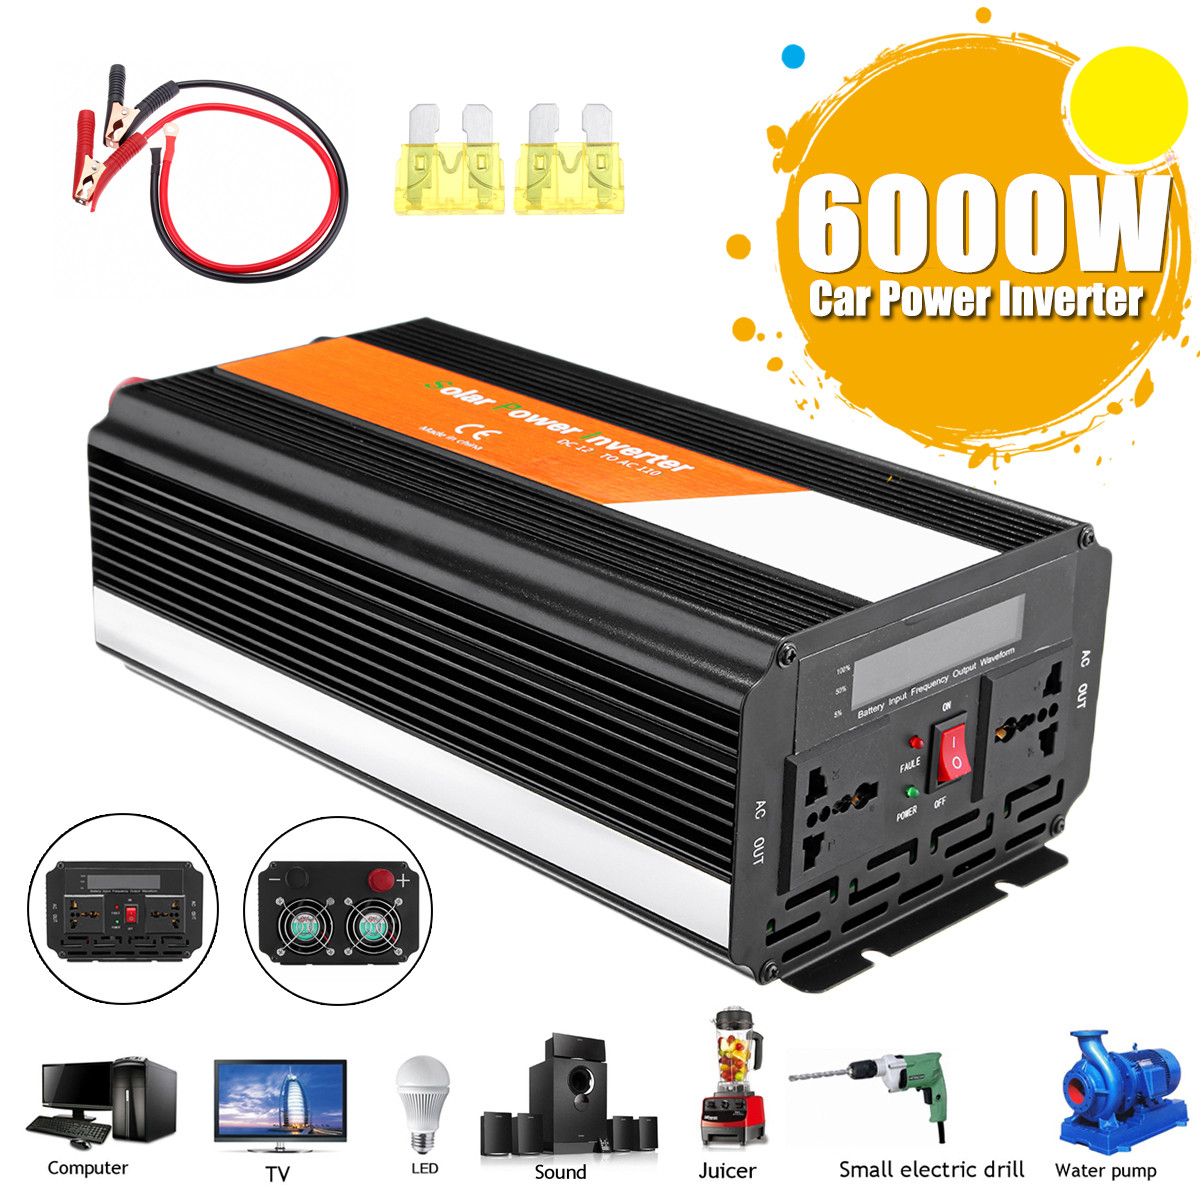 Car Inverter DC 12V AC 200-240V 6000W Peak- Modified Sine Wave Converter Power Voltage Transformer + LCD Display Aluminum Alloy